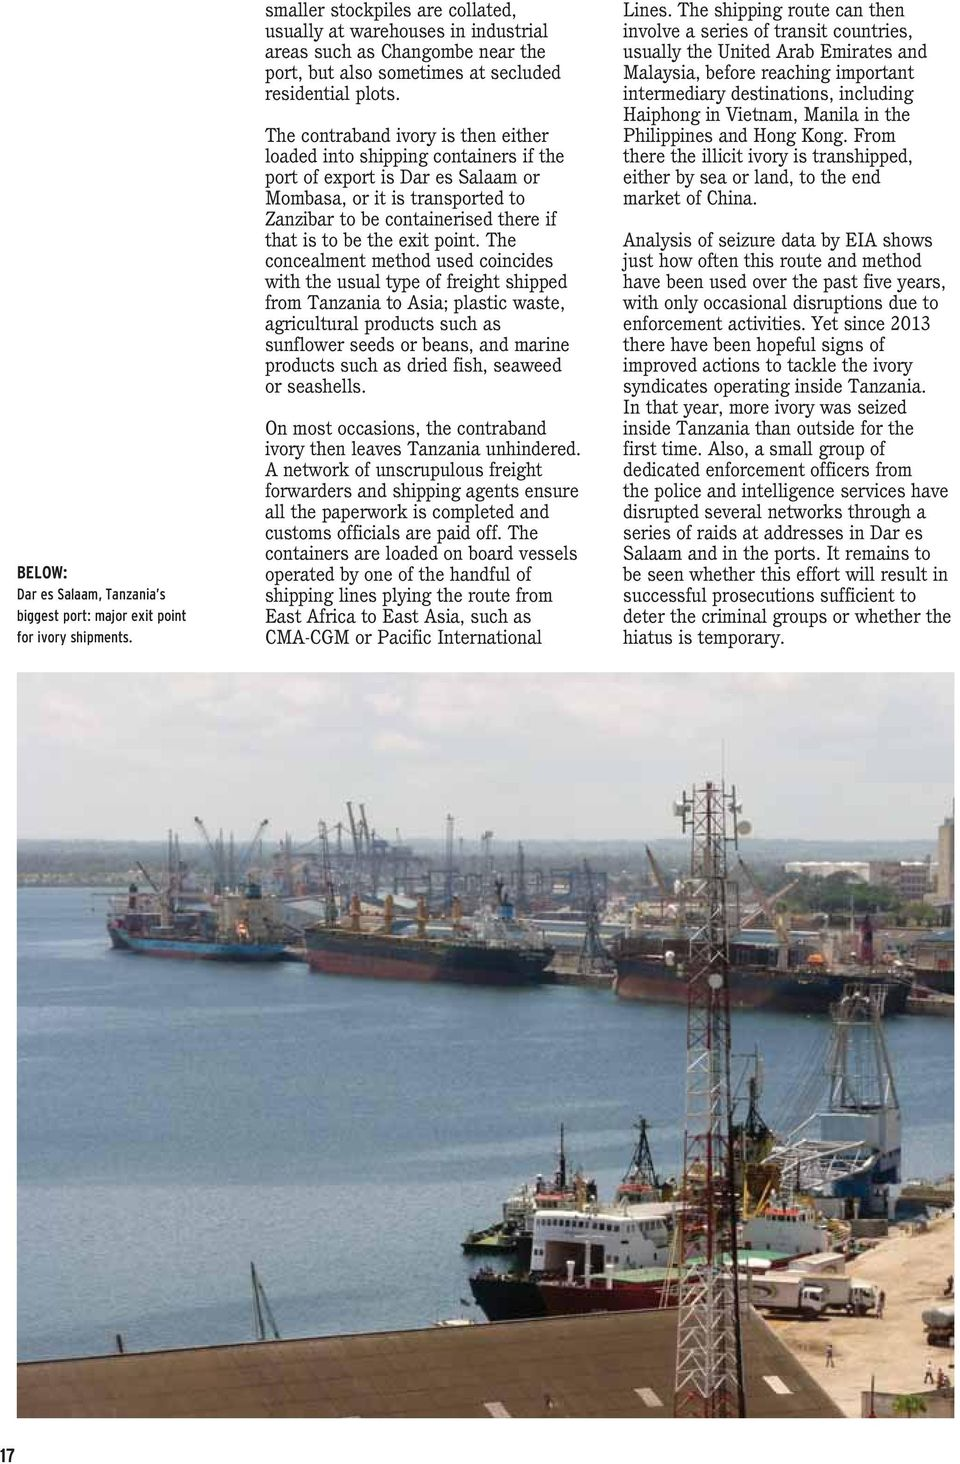 The contraband ivory is then either loaded into shipping containers if the port of export is Dar es Salaam or Mombasa, or it is transported to Zanzibar to be containerised there if that is to be the